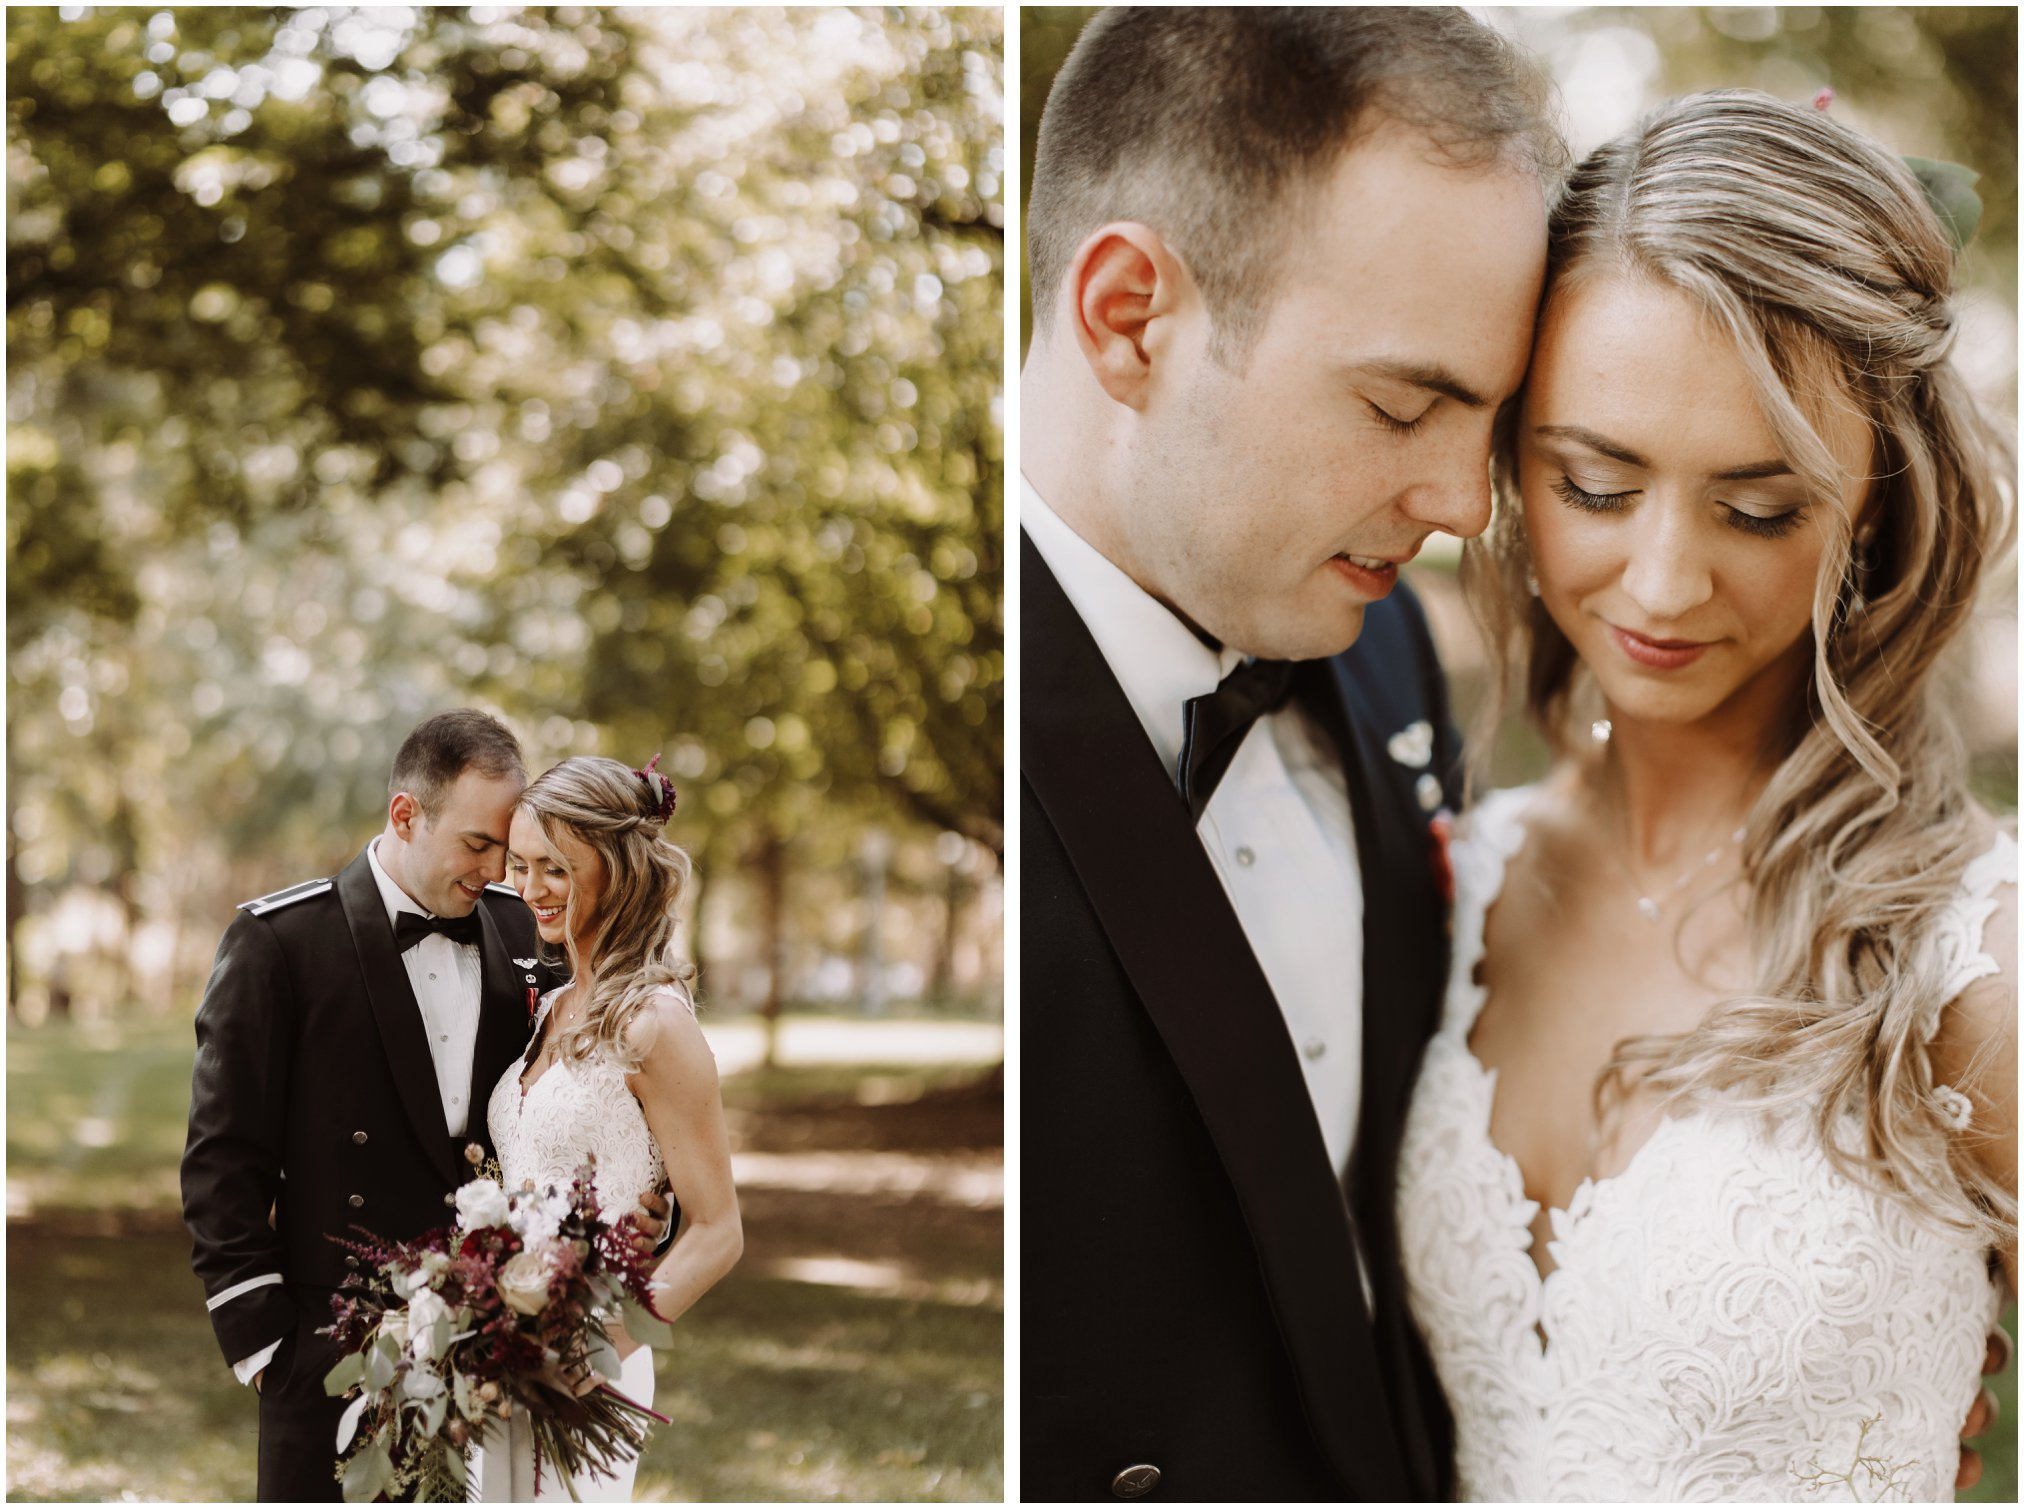 Annapolis Wedding Photographer, Kate Ann Photography, Timberlake Farm, Timberlake Farm Wedding, Annapolis Bride, First Look, Bride and Groom First Look